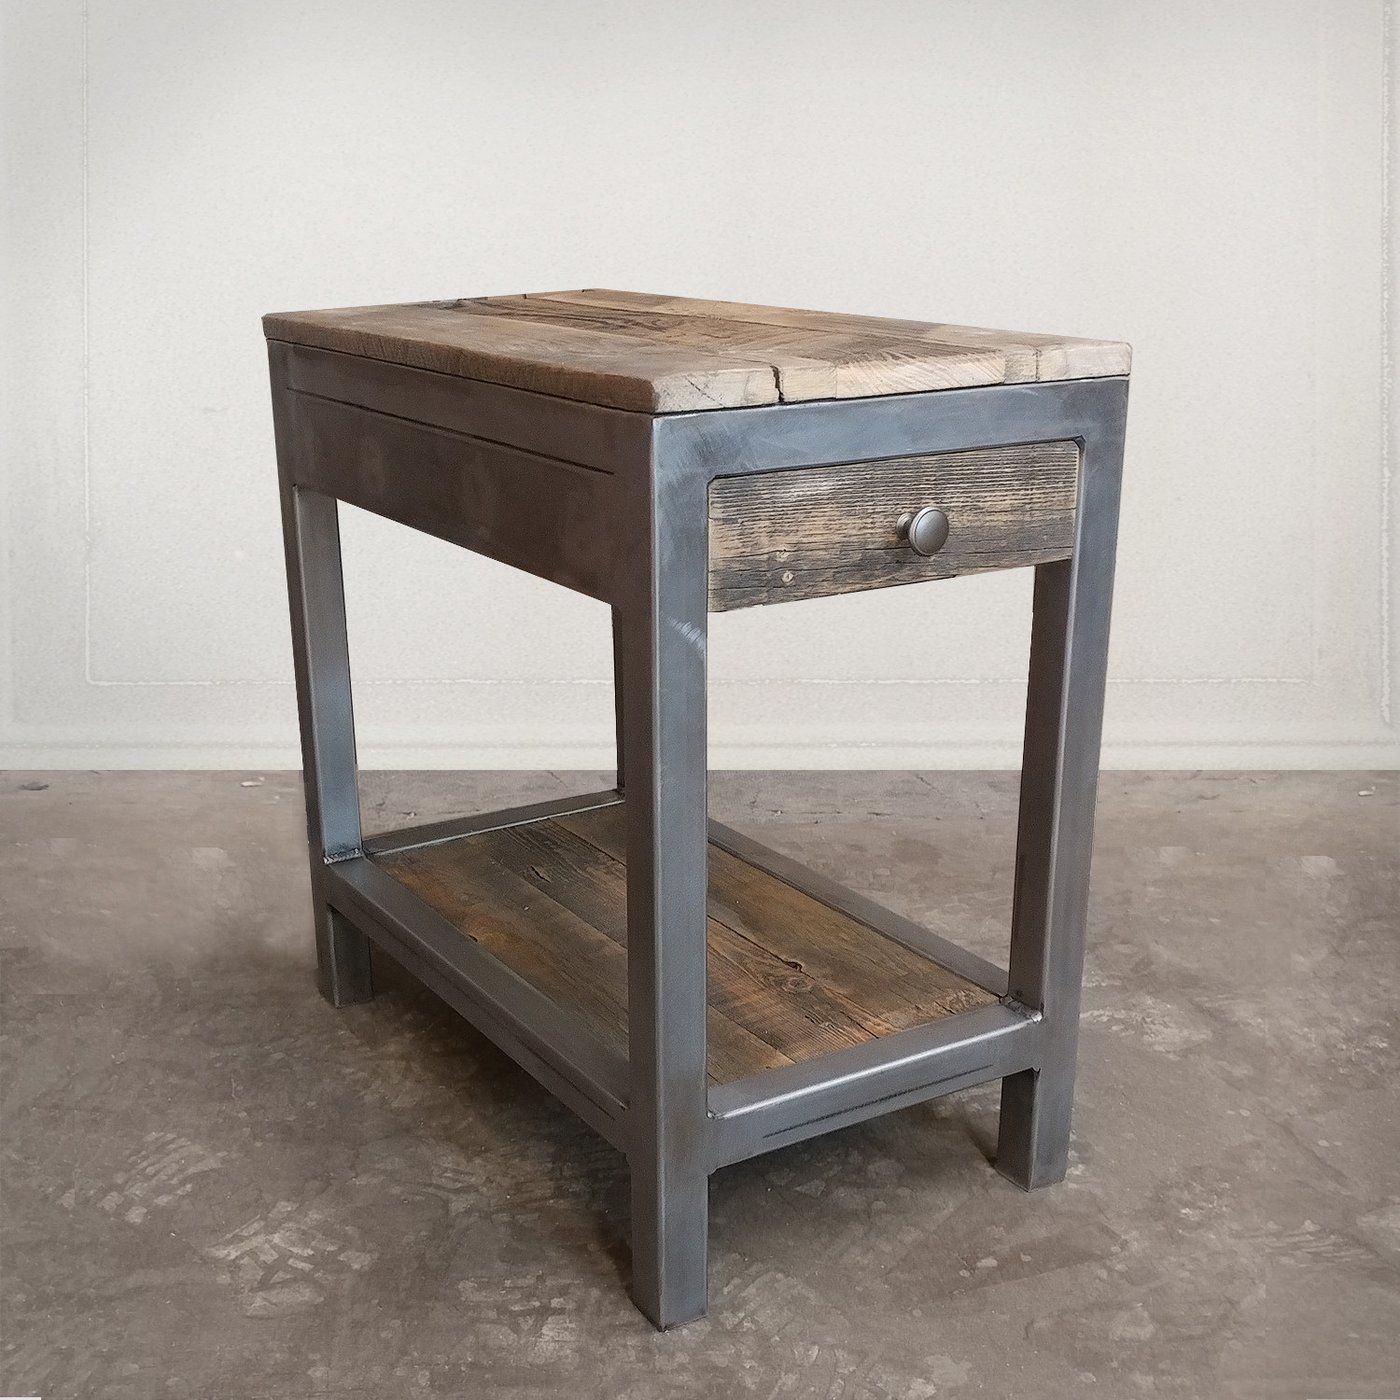 Best Reclaimed Wood And Metal End Table With Storage Vintage 640 x 480